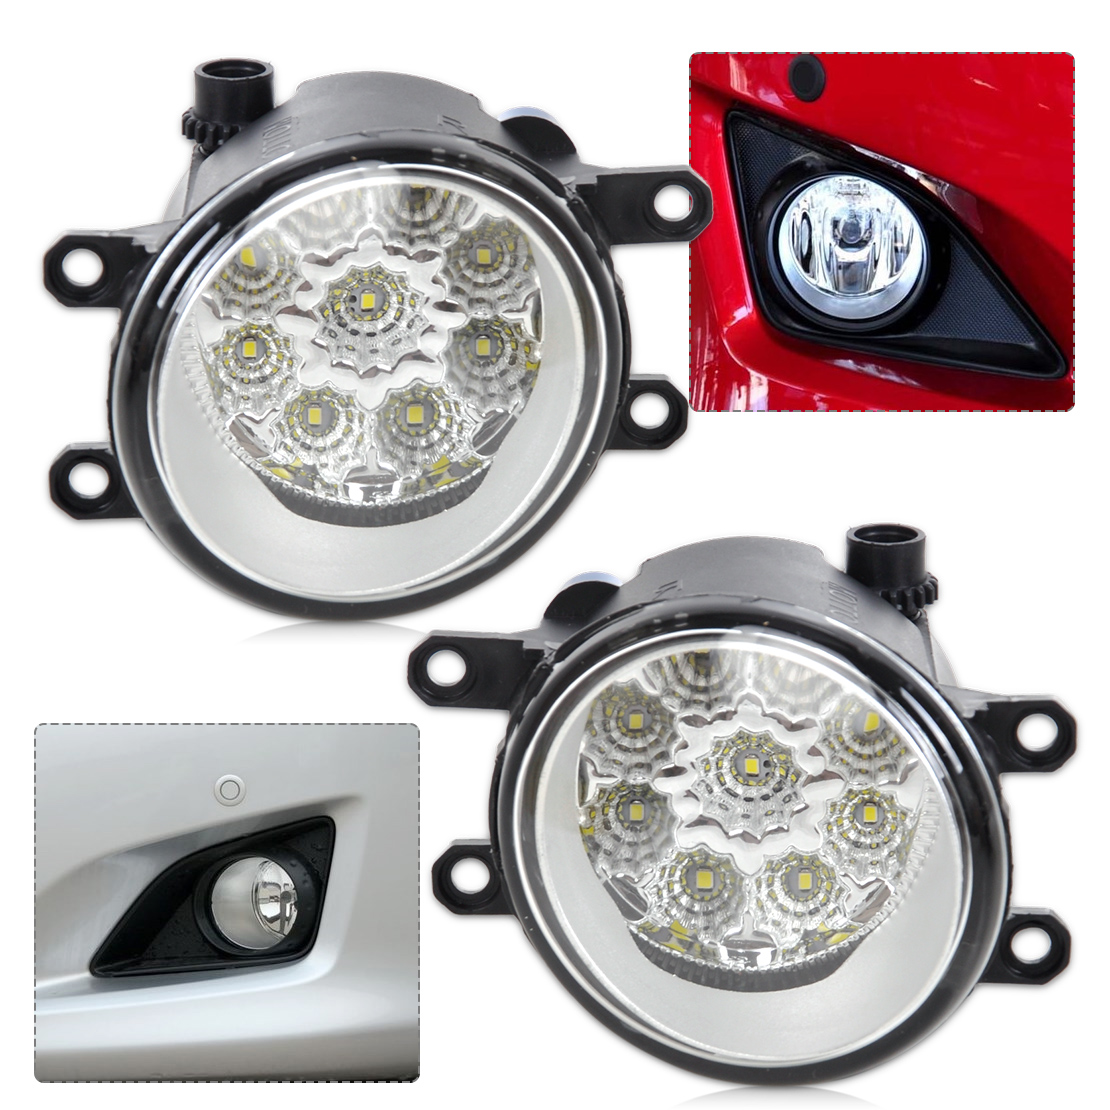 #beler 2Pcs Right/Left Fog Light Lamp 55W 9-LED DRL Daytime Running Lights 81210-06050 for Toyota Camry Corolla RAV 4 Lexus<br>